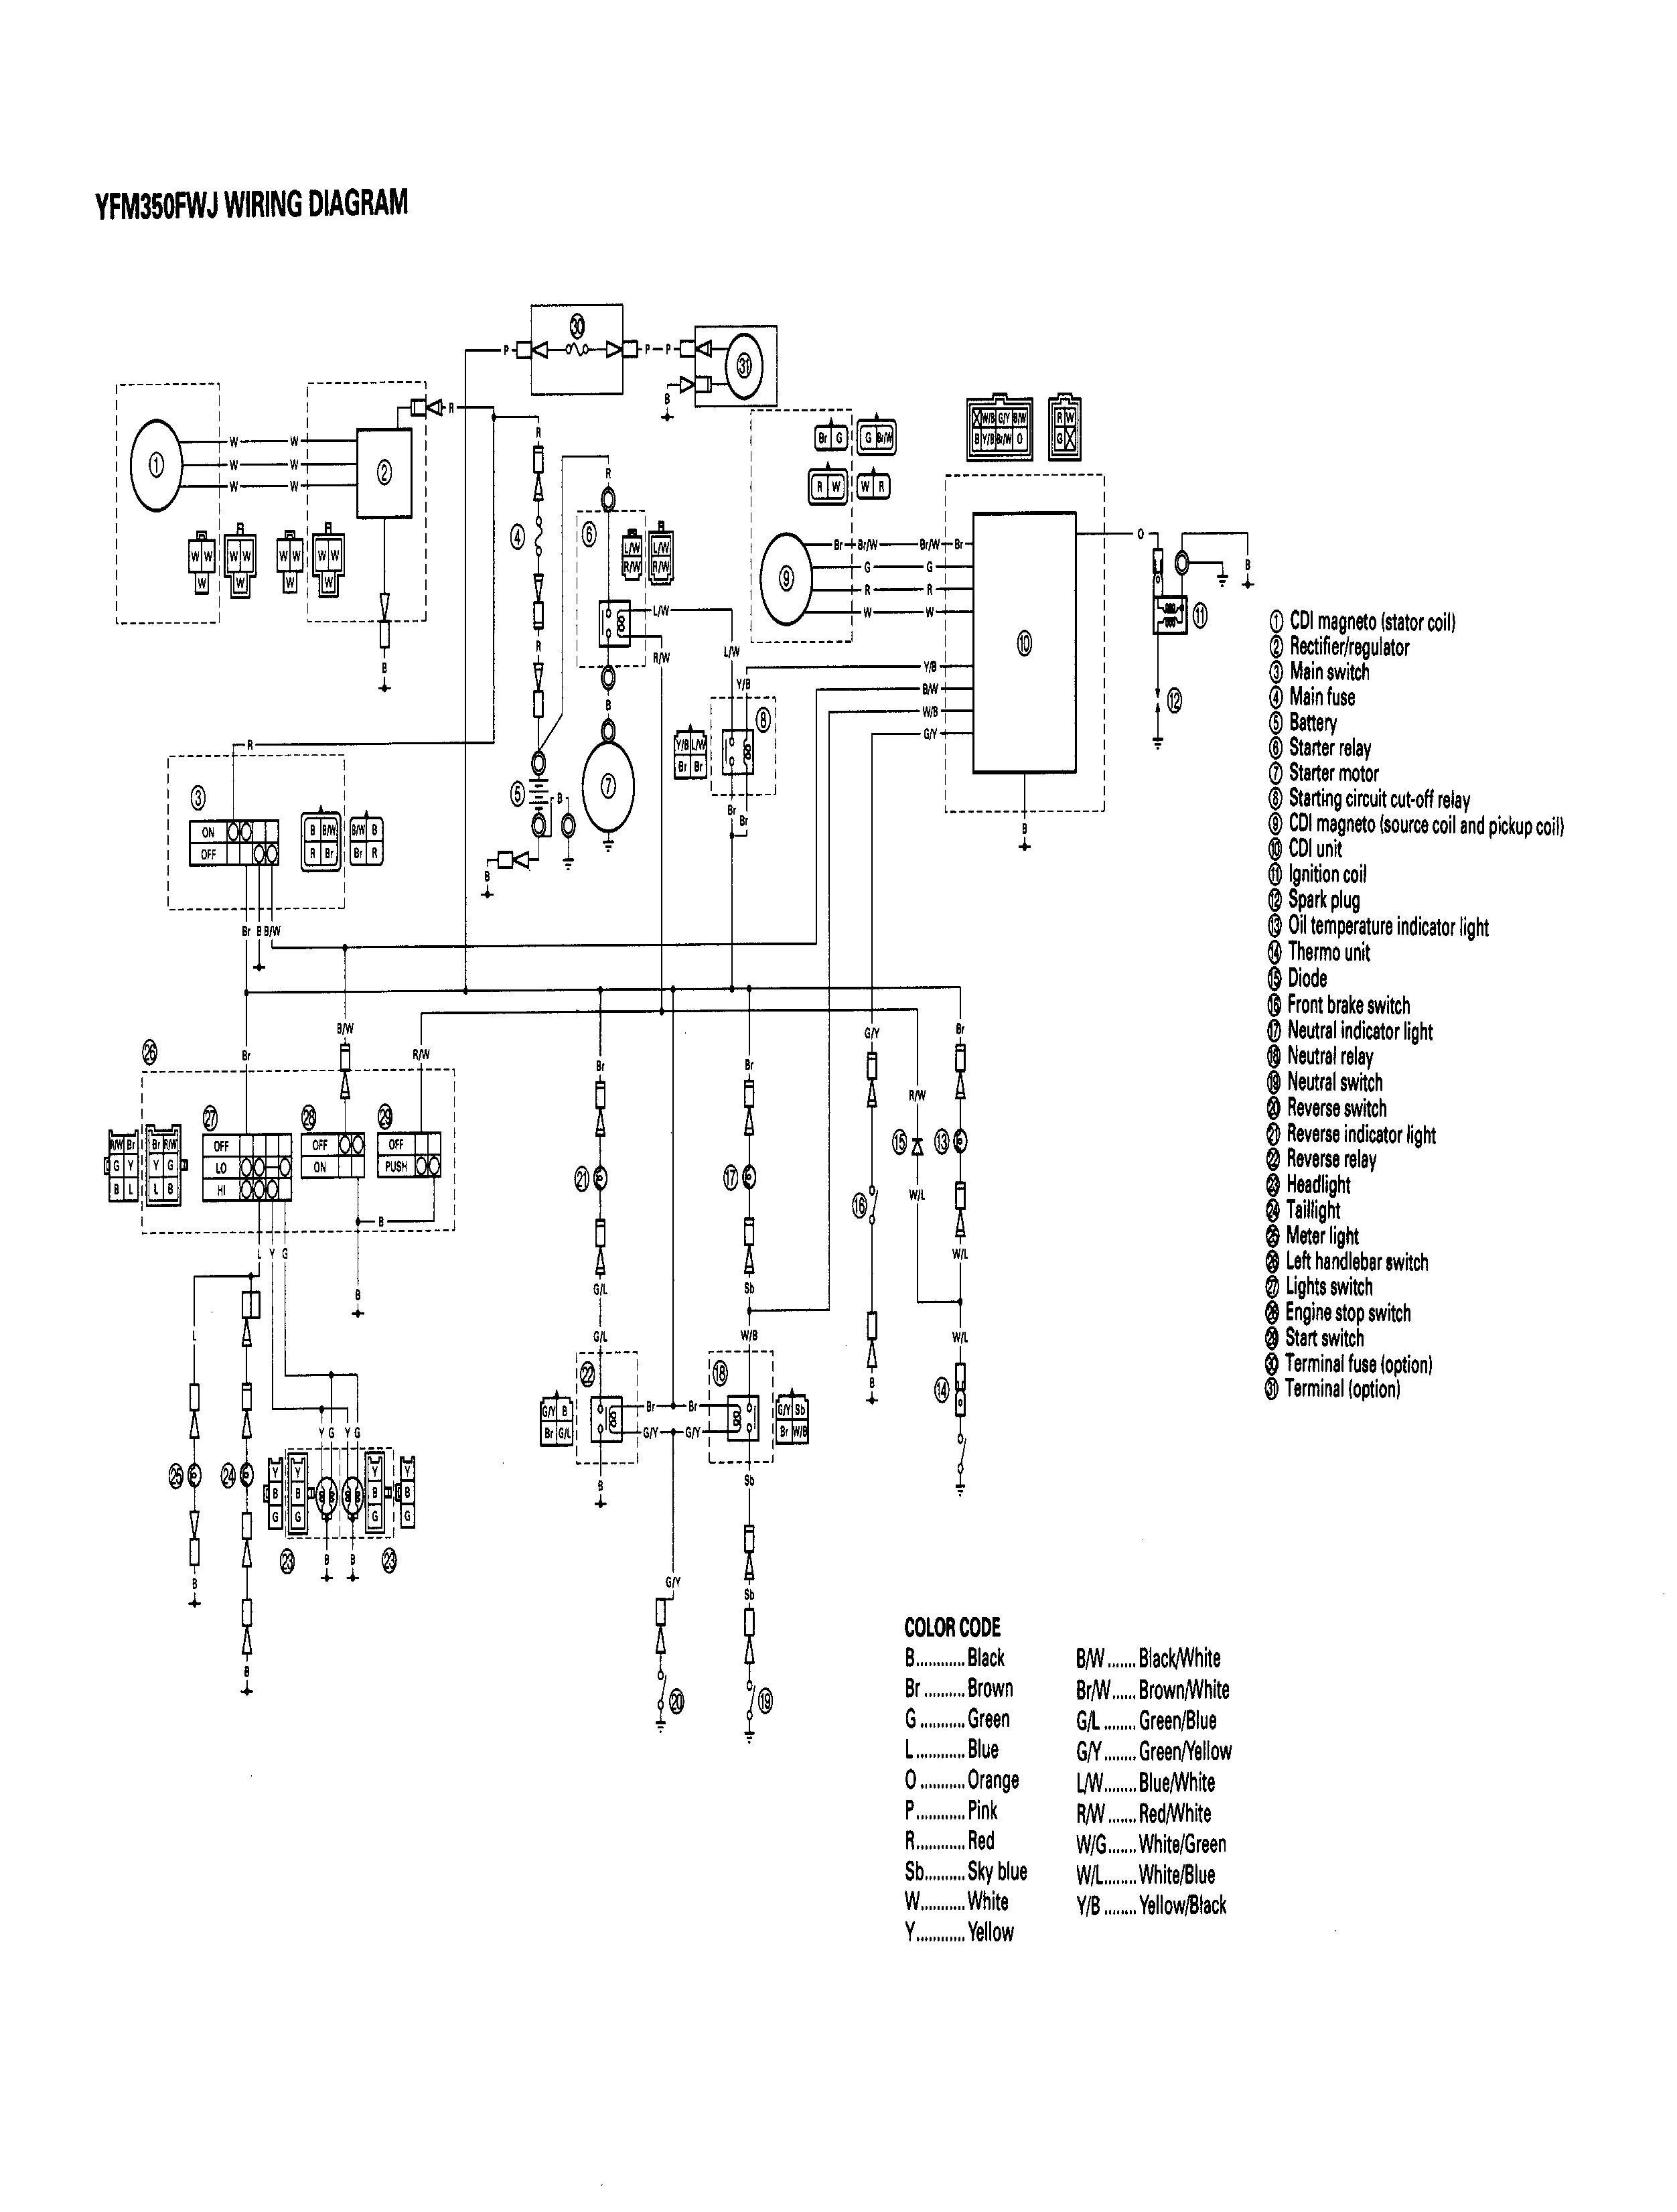 54194d1504032570 1996 bigbear 350 4x4 wiring yamaha big bear 350 wiring diagram_548755 yamaha grizzly 350 wiring diagram big bear 350 wiring diagram yamaha atv electrical diagrams at gsmportal.co